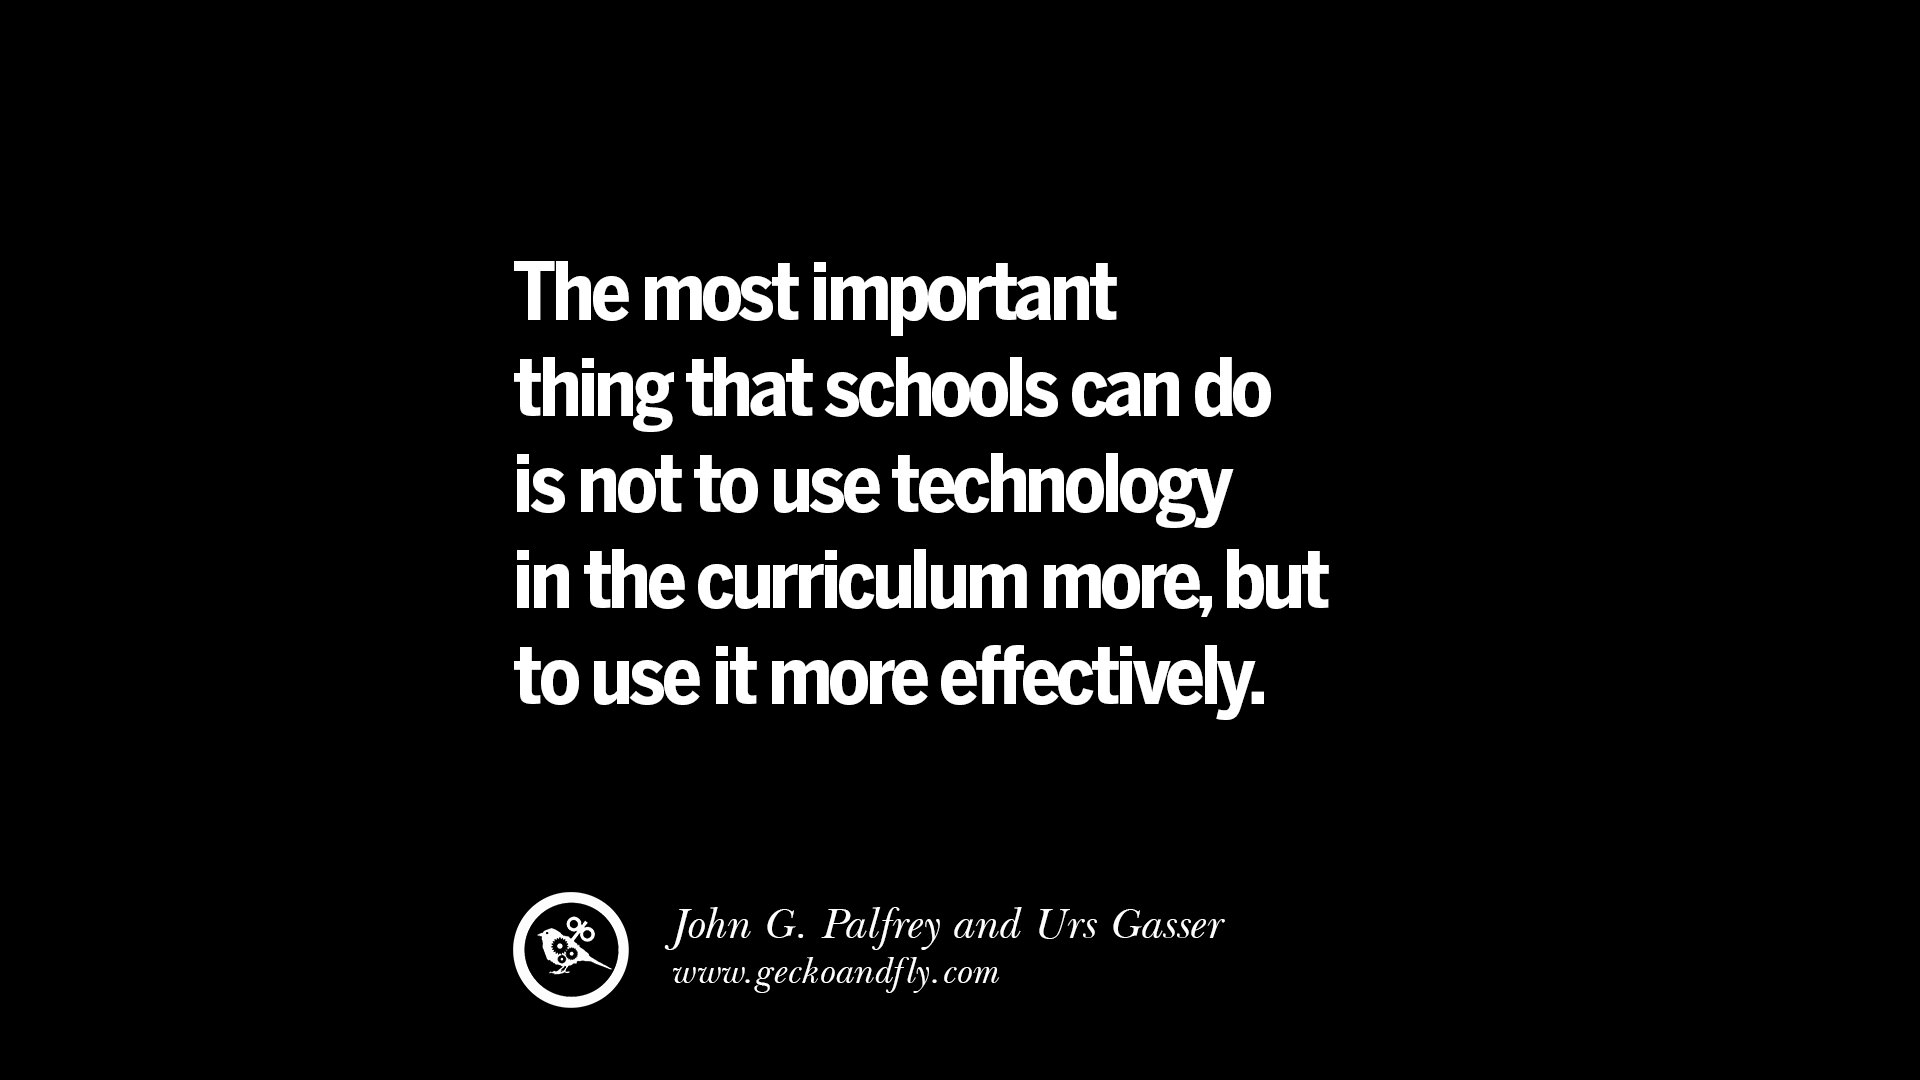 Quotes About Technology Popular Quotes  Education Technology  Bam Radio Network